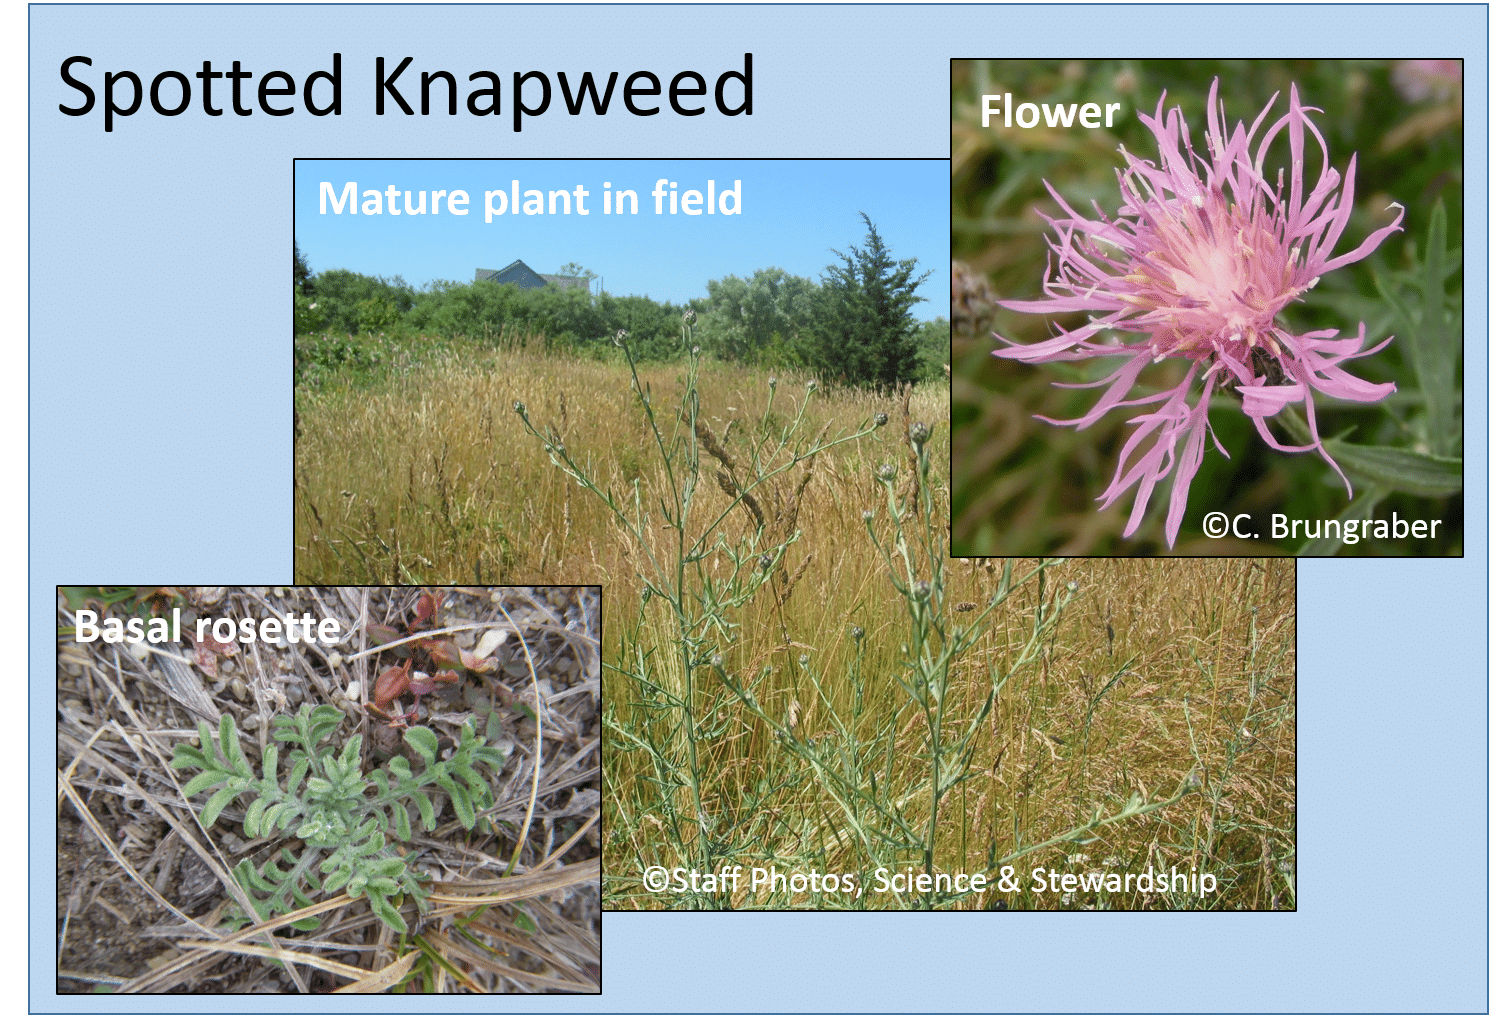 Spotted knapweed (Centaurea stoebe), a plant that can invade grasslands or dune habitats.